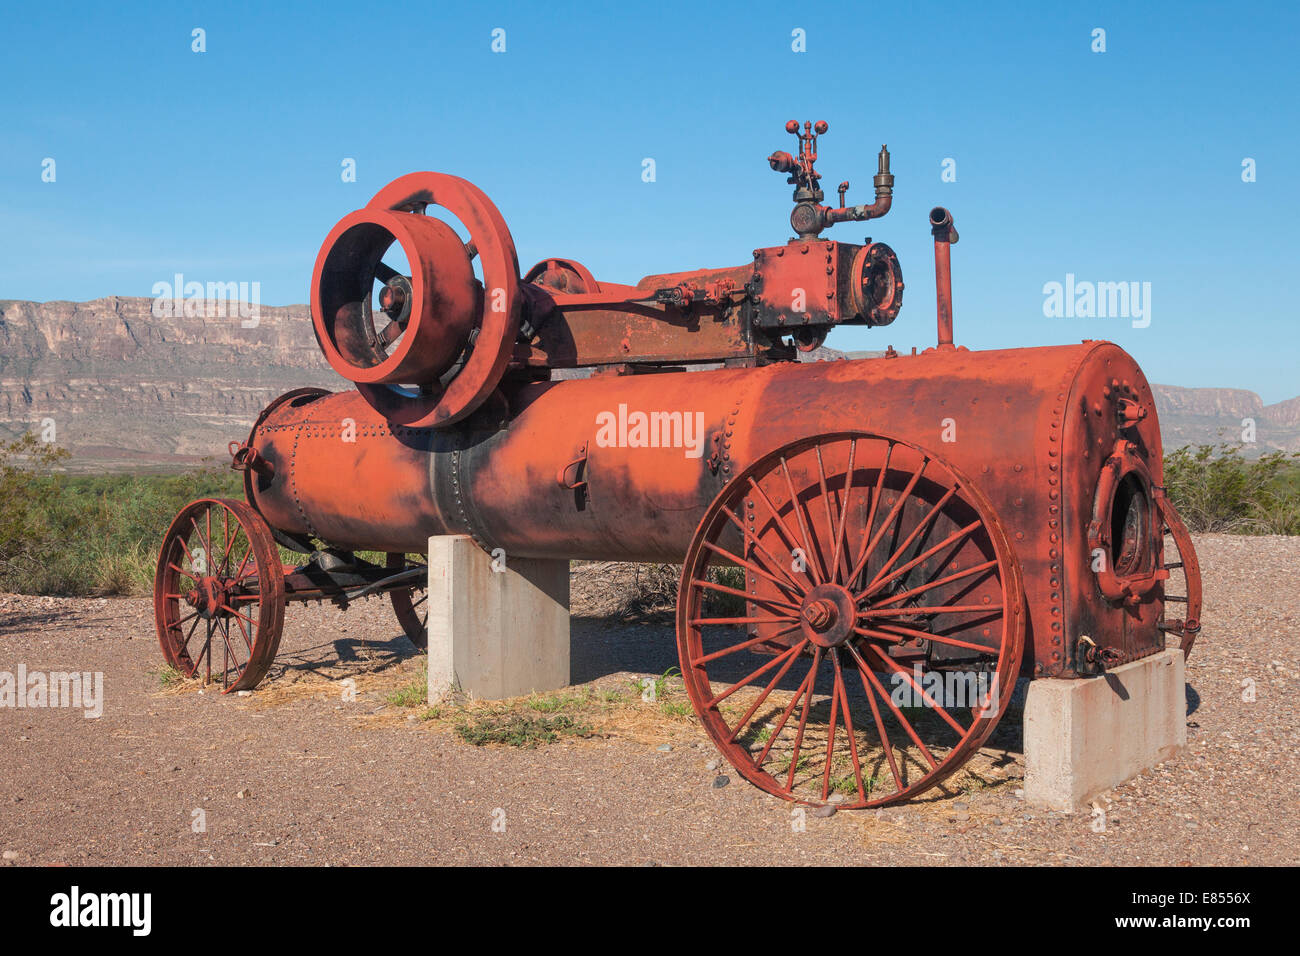 Old Steam Engine once used in cotton farming gin operations at Castolon Historic District in Big Bend National Park. Stock Photo